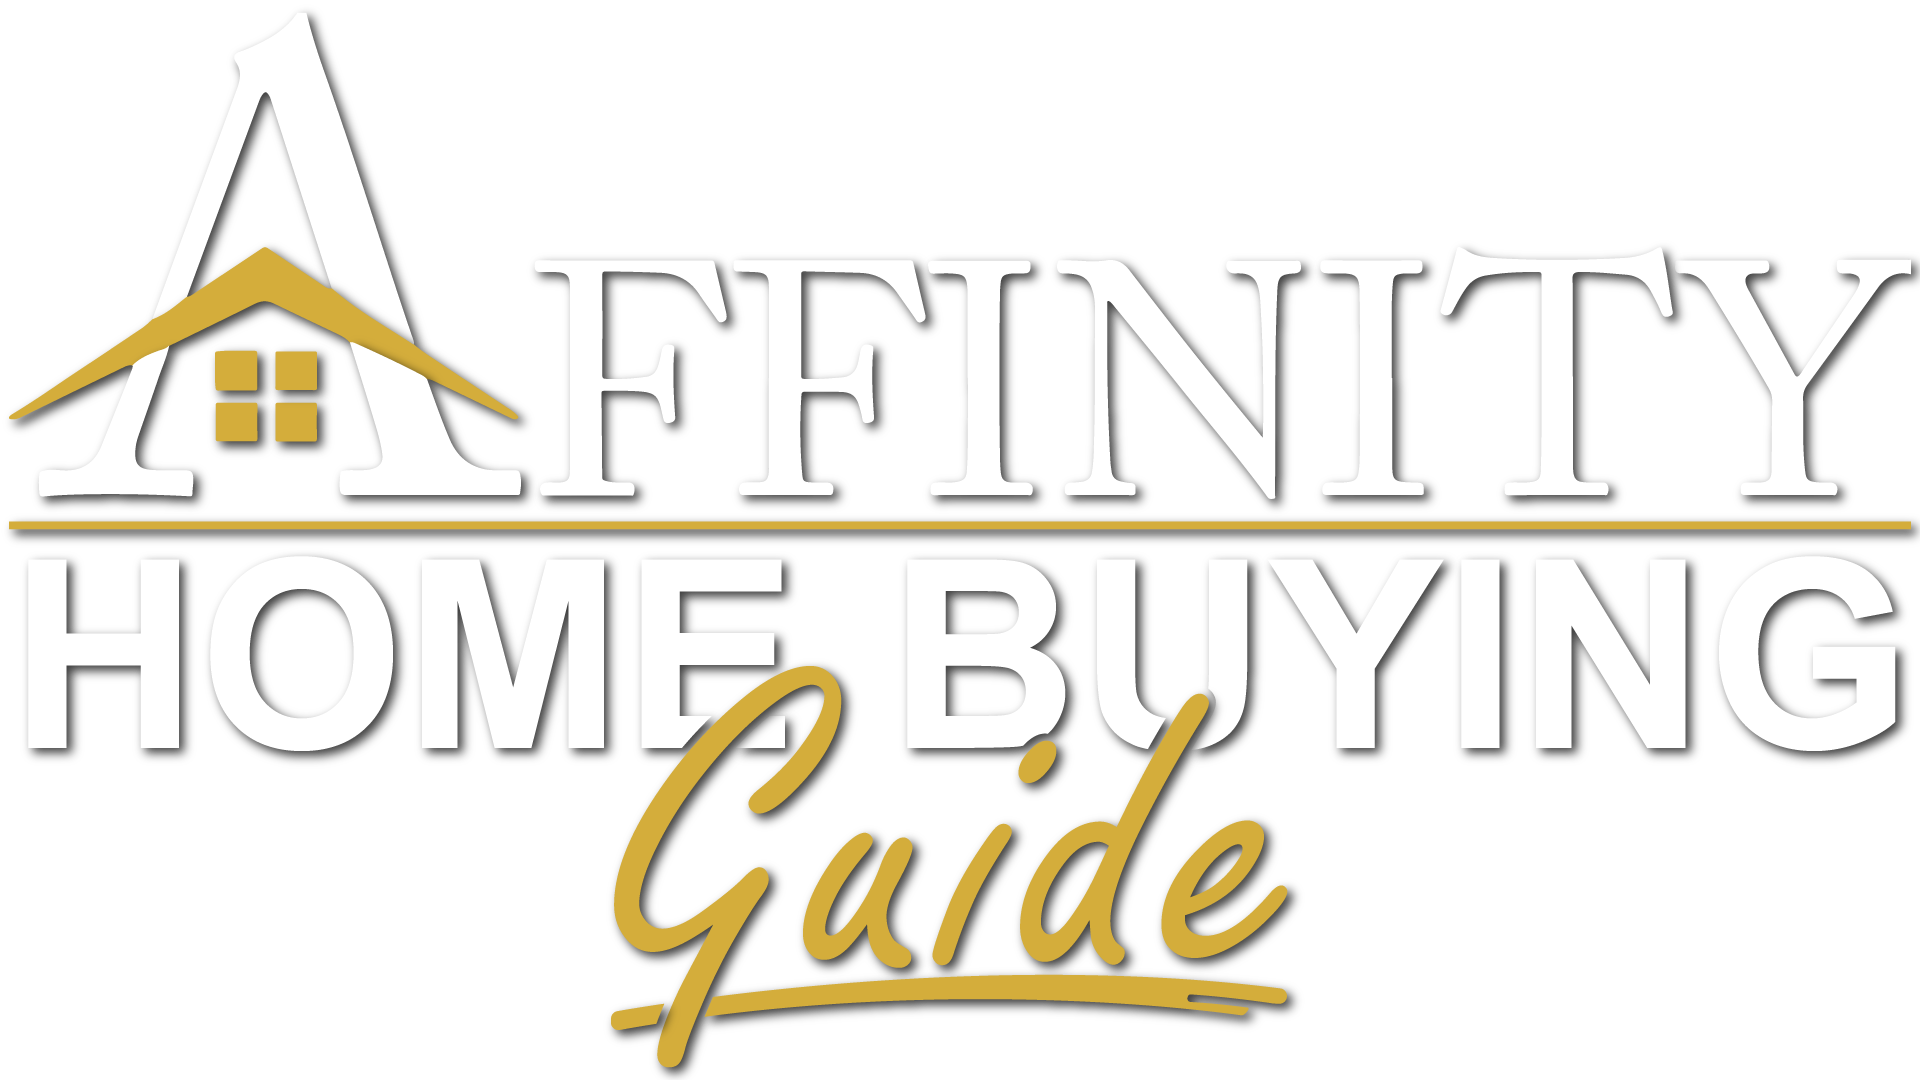 affinity home buying guide logo